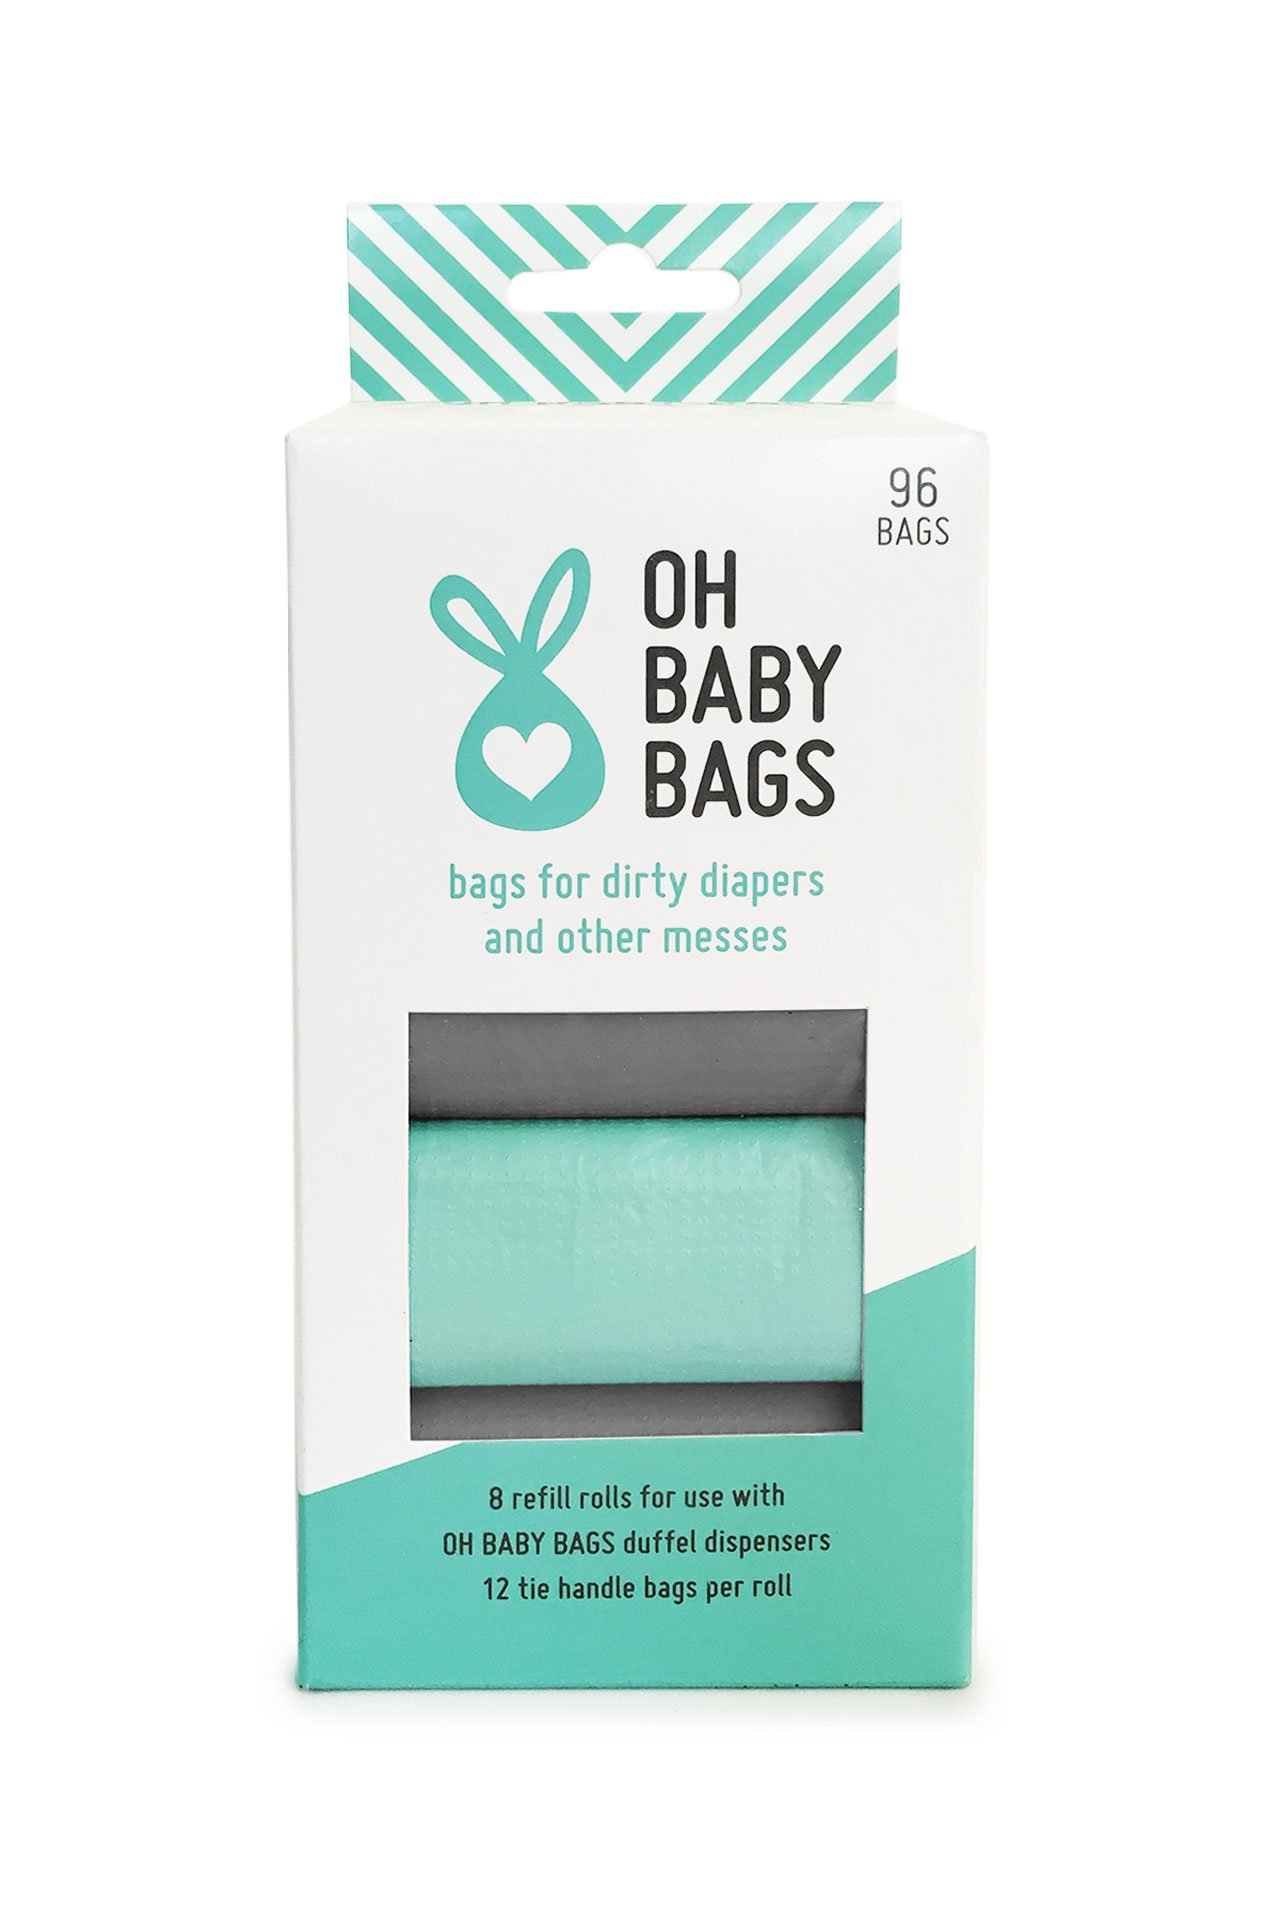 Oh Baby Bags Bulk Refill Box - Recycled Scented Disposable Plastic Bags for Dirty Diapers and Other Messes - Refills Only - 8 Rolls, 96 Bags Total - Seafoam and Gray